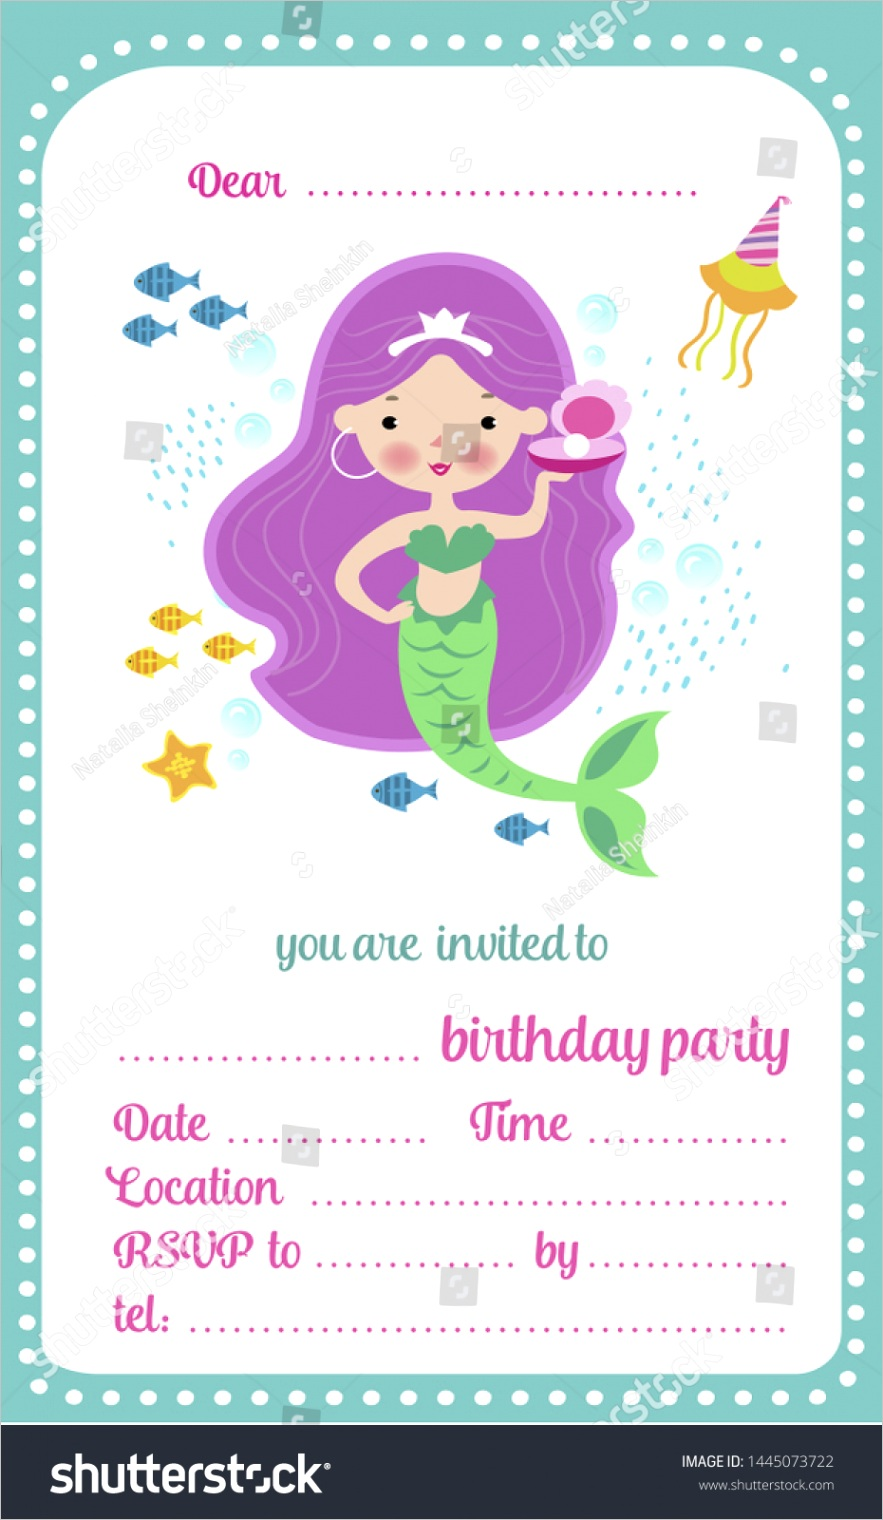 kids birthday party invitation template card